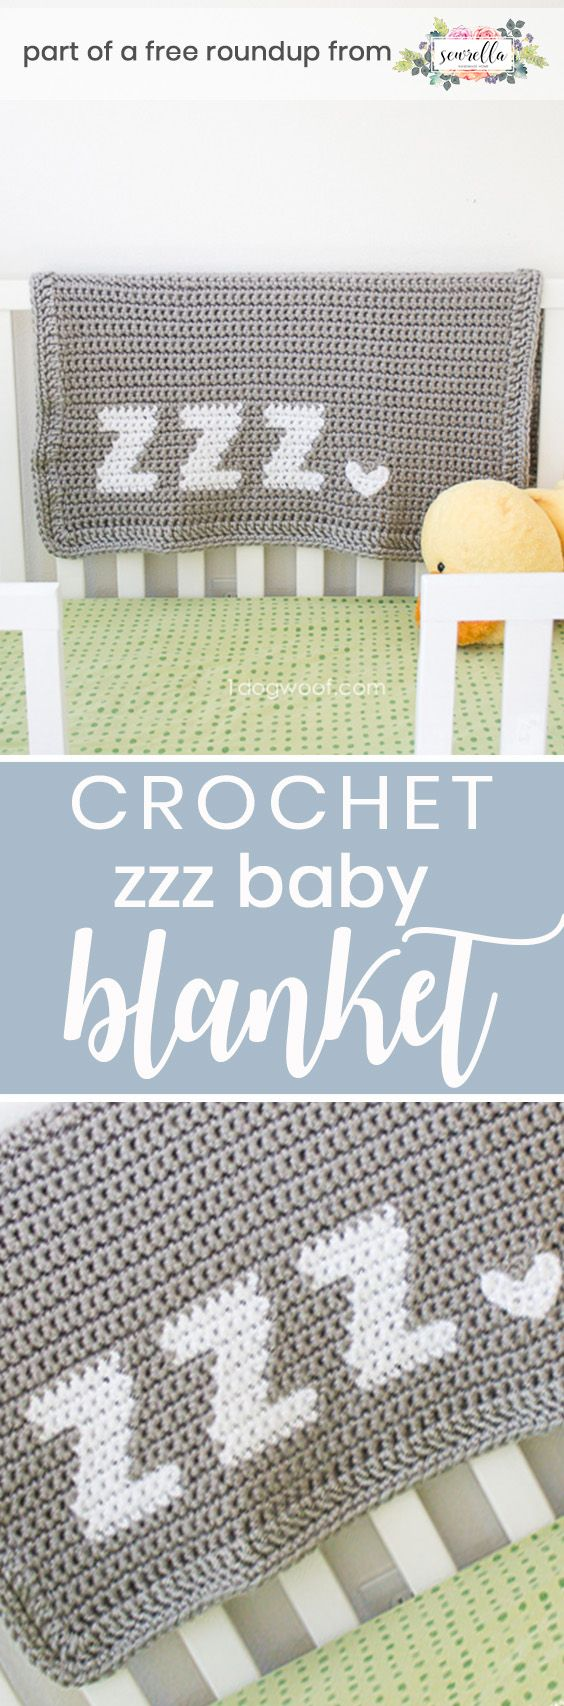 Get the free crochet pattern for this get some zzz's typography baby blanket from One Dog Woof featured in my gender neutral baby blanket FREE pattern roundup!